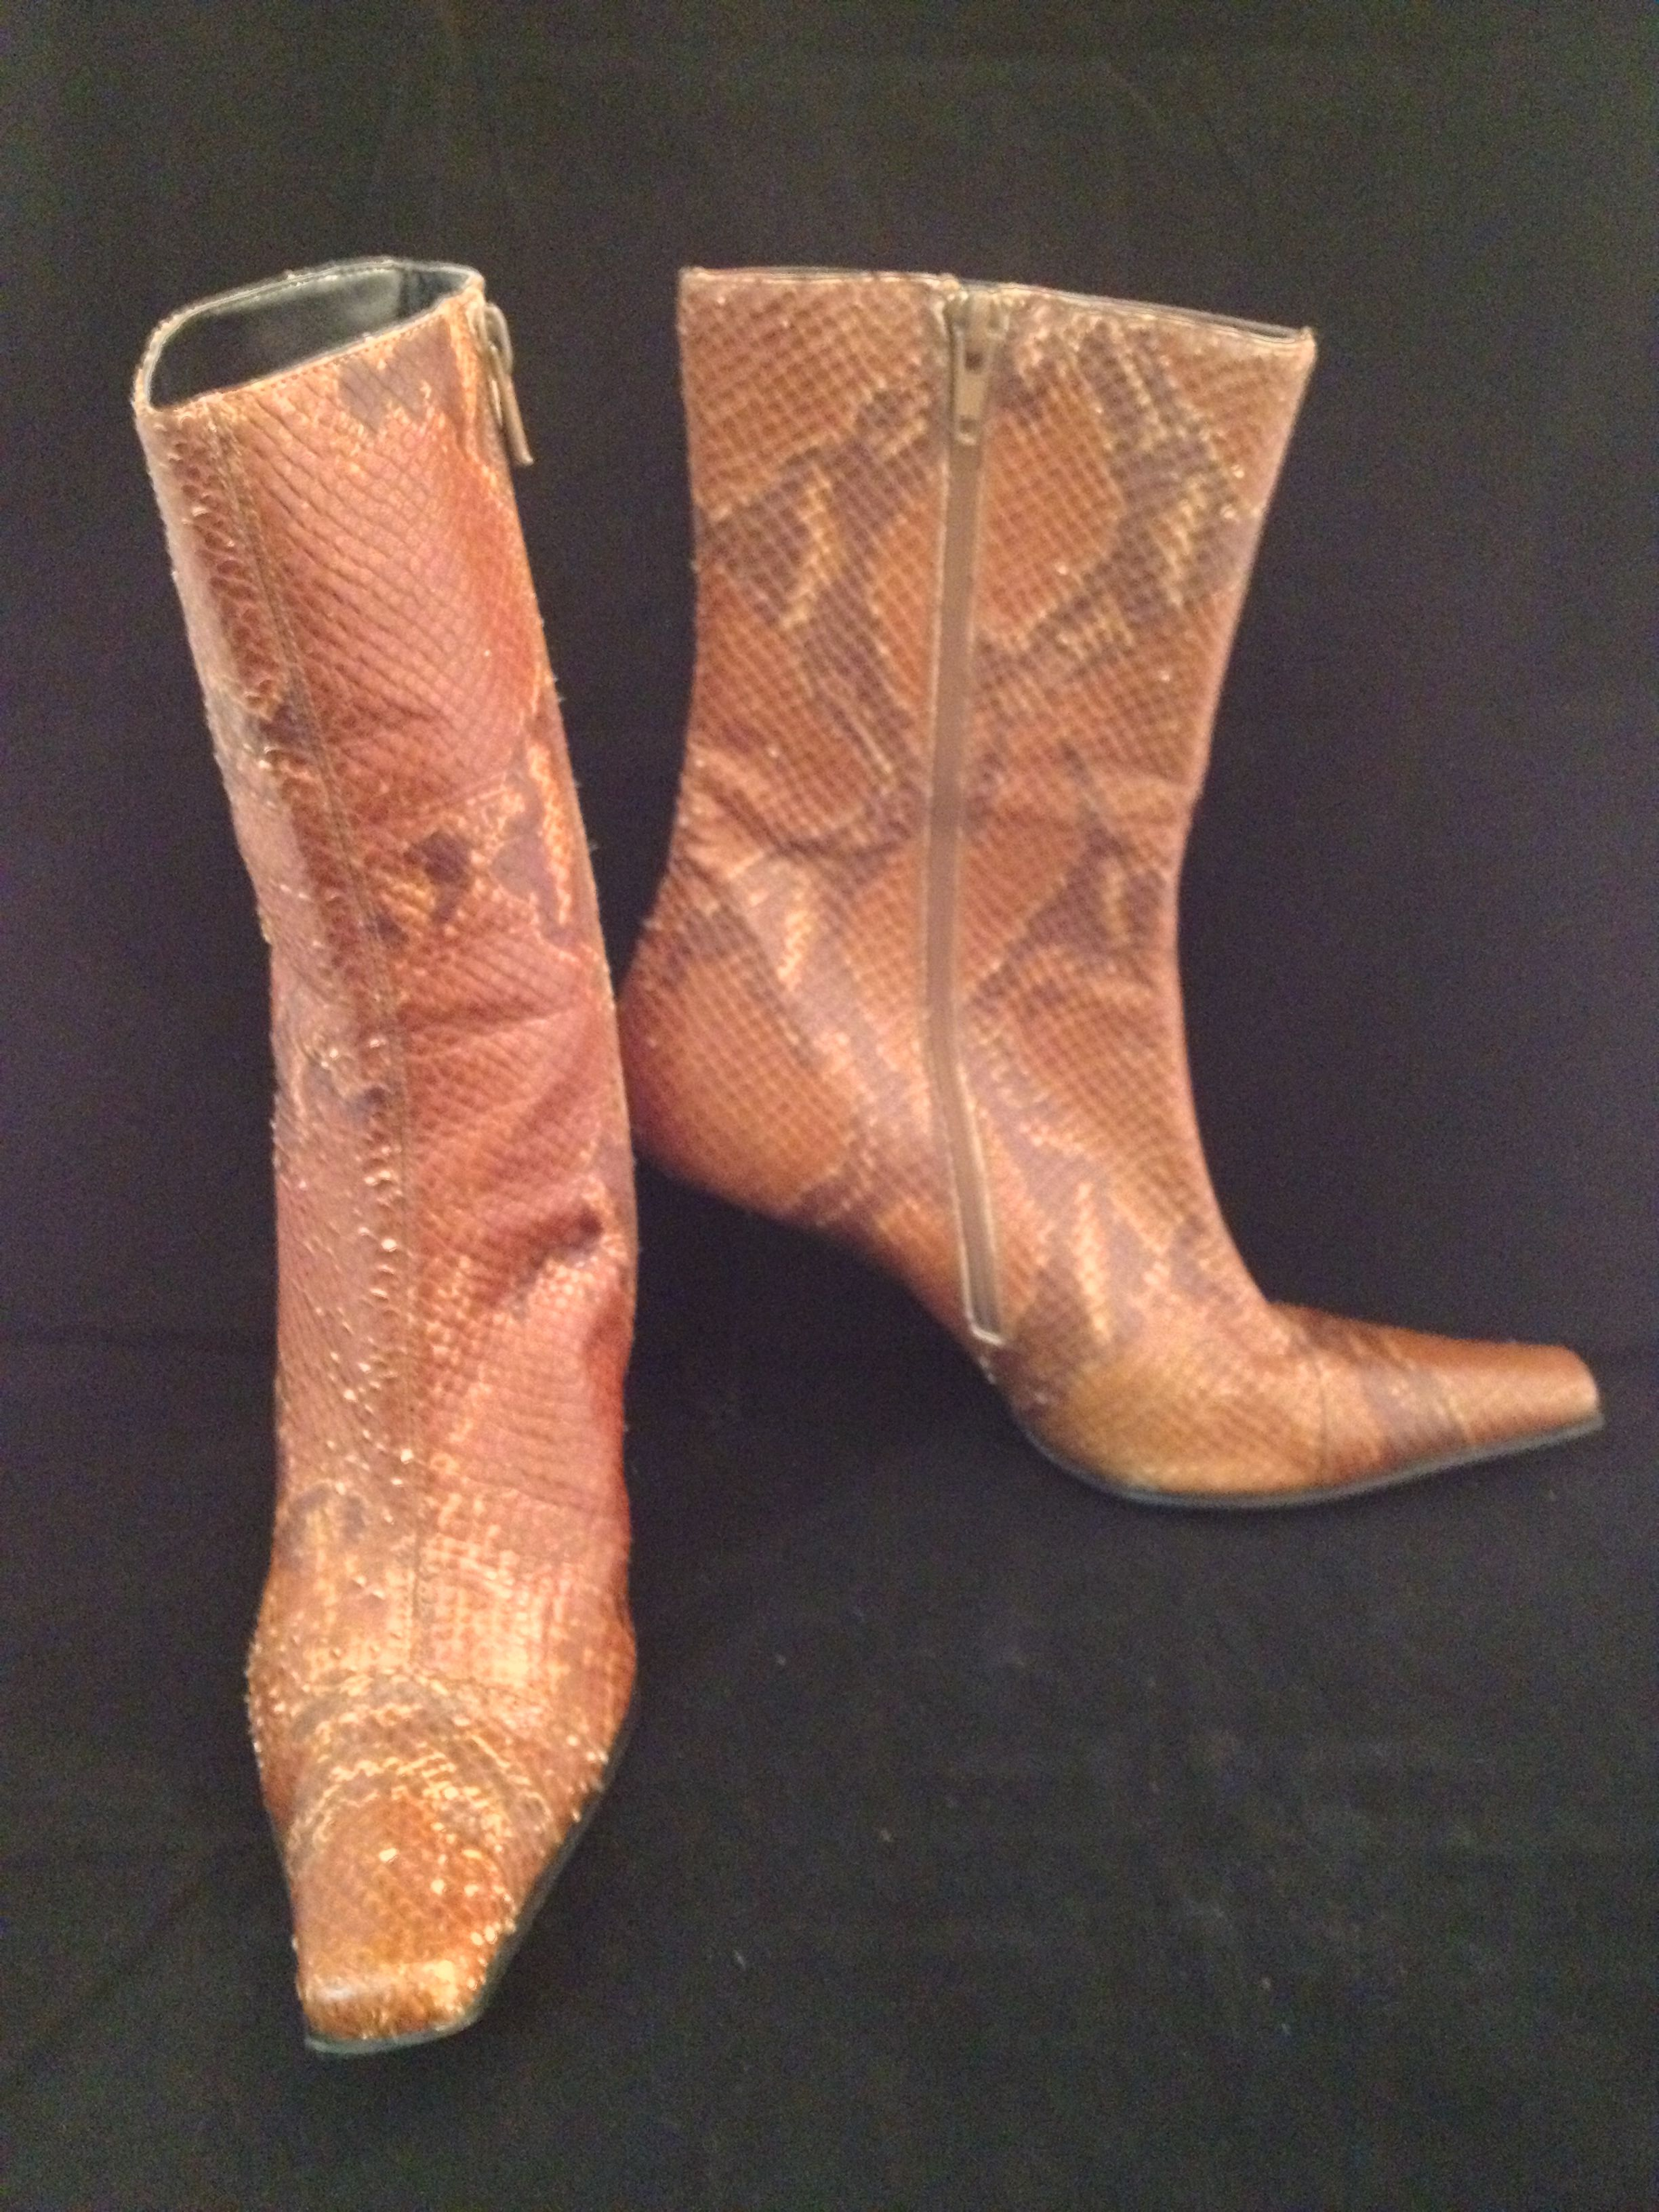 Max de Carlo skin boots in rust and brown size 6.5. Perfect for Fall!